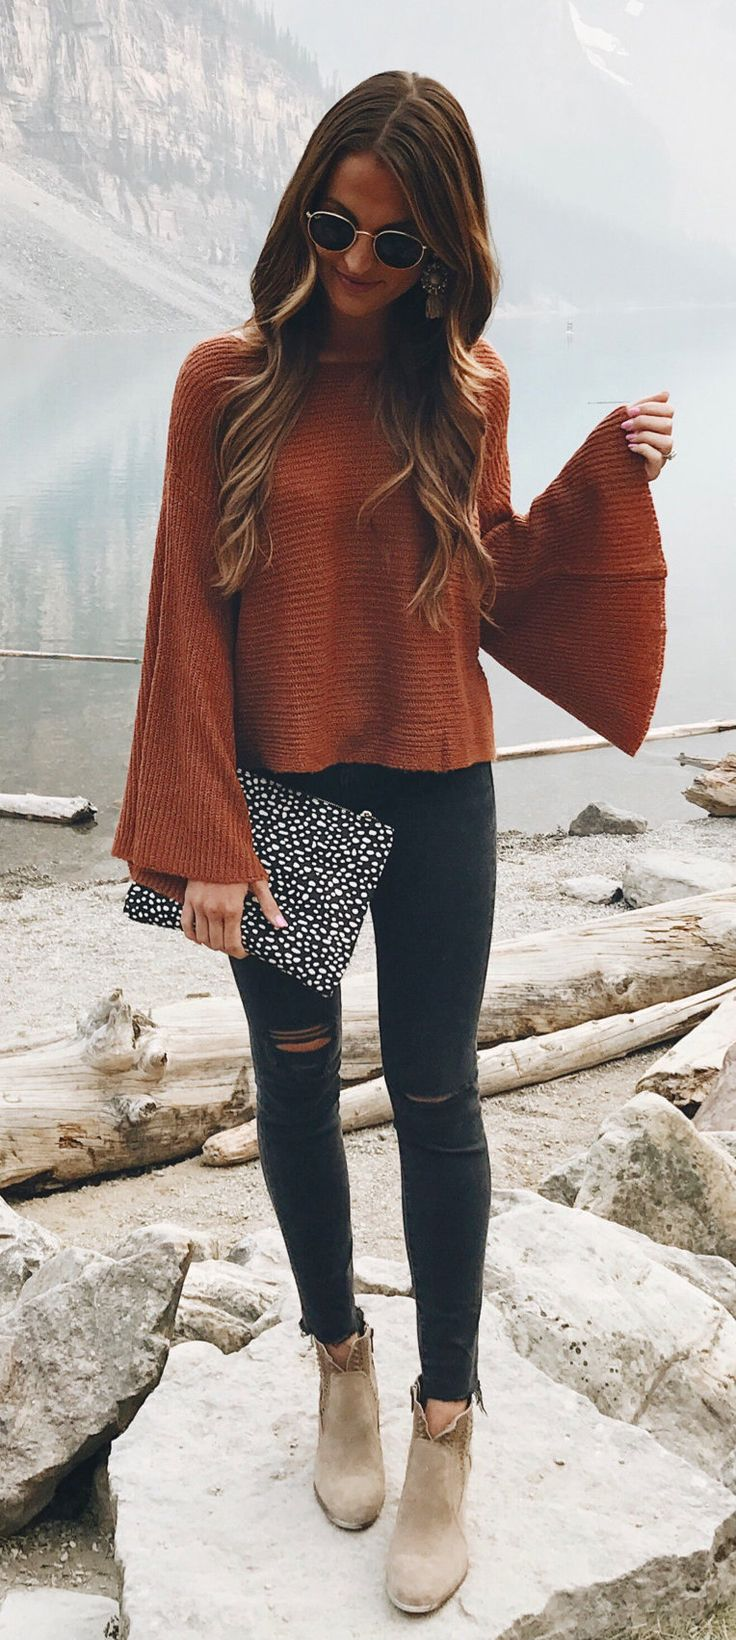 Best 25+ Womenu0026#39;s fall fashion ideas on Pinterest | Autumn fashion women fall outfits Fall ...